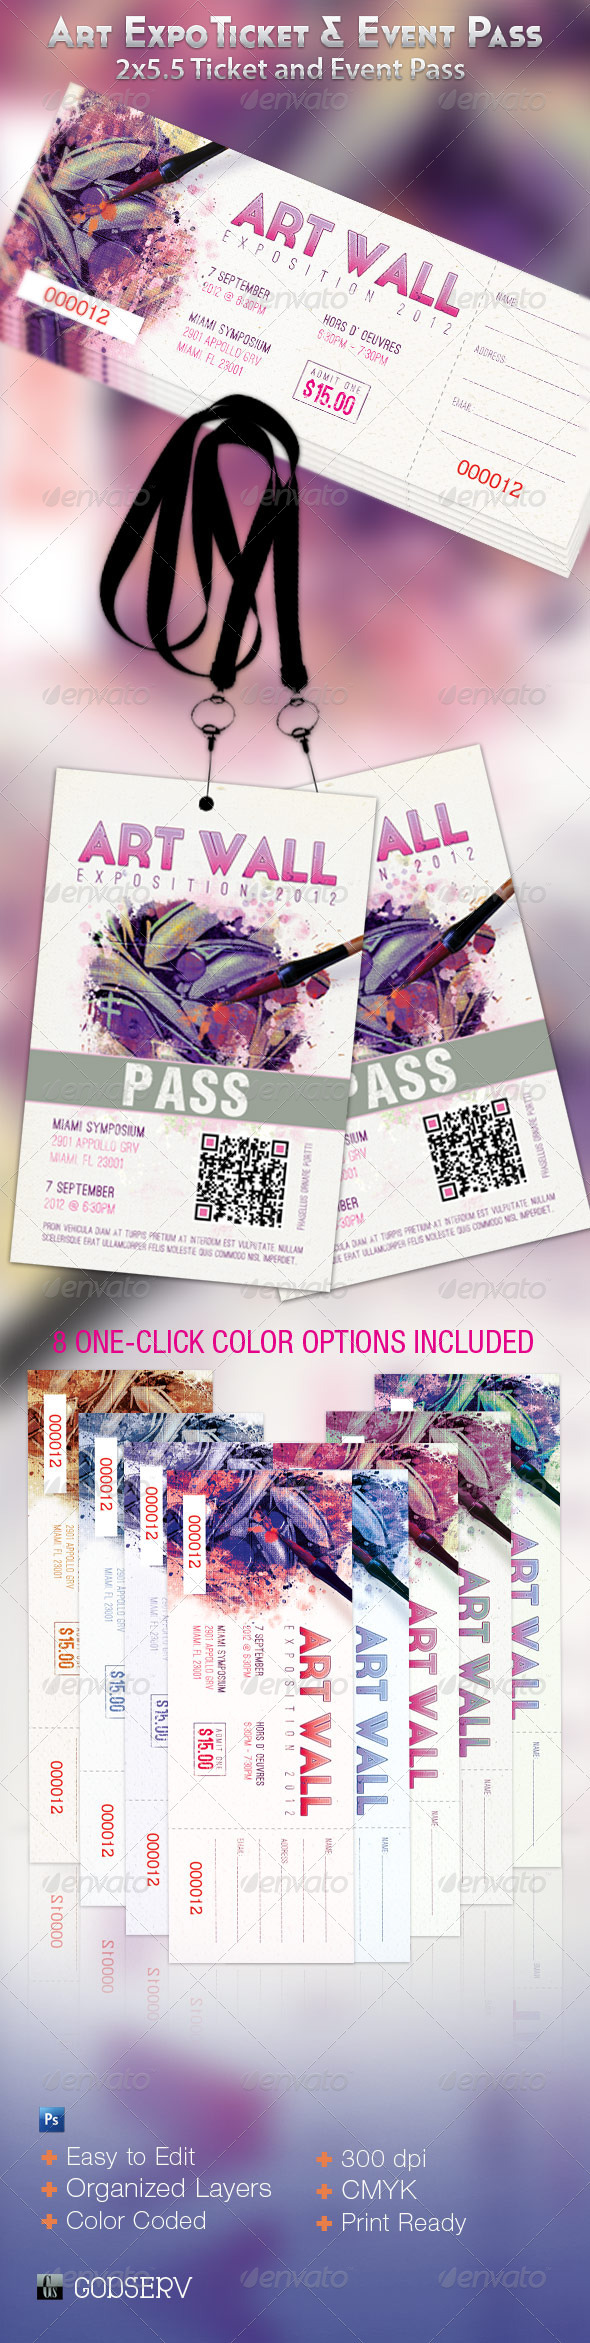 GraphicRiver Art Expo Ticket and Event Pass Template 2529645